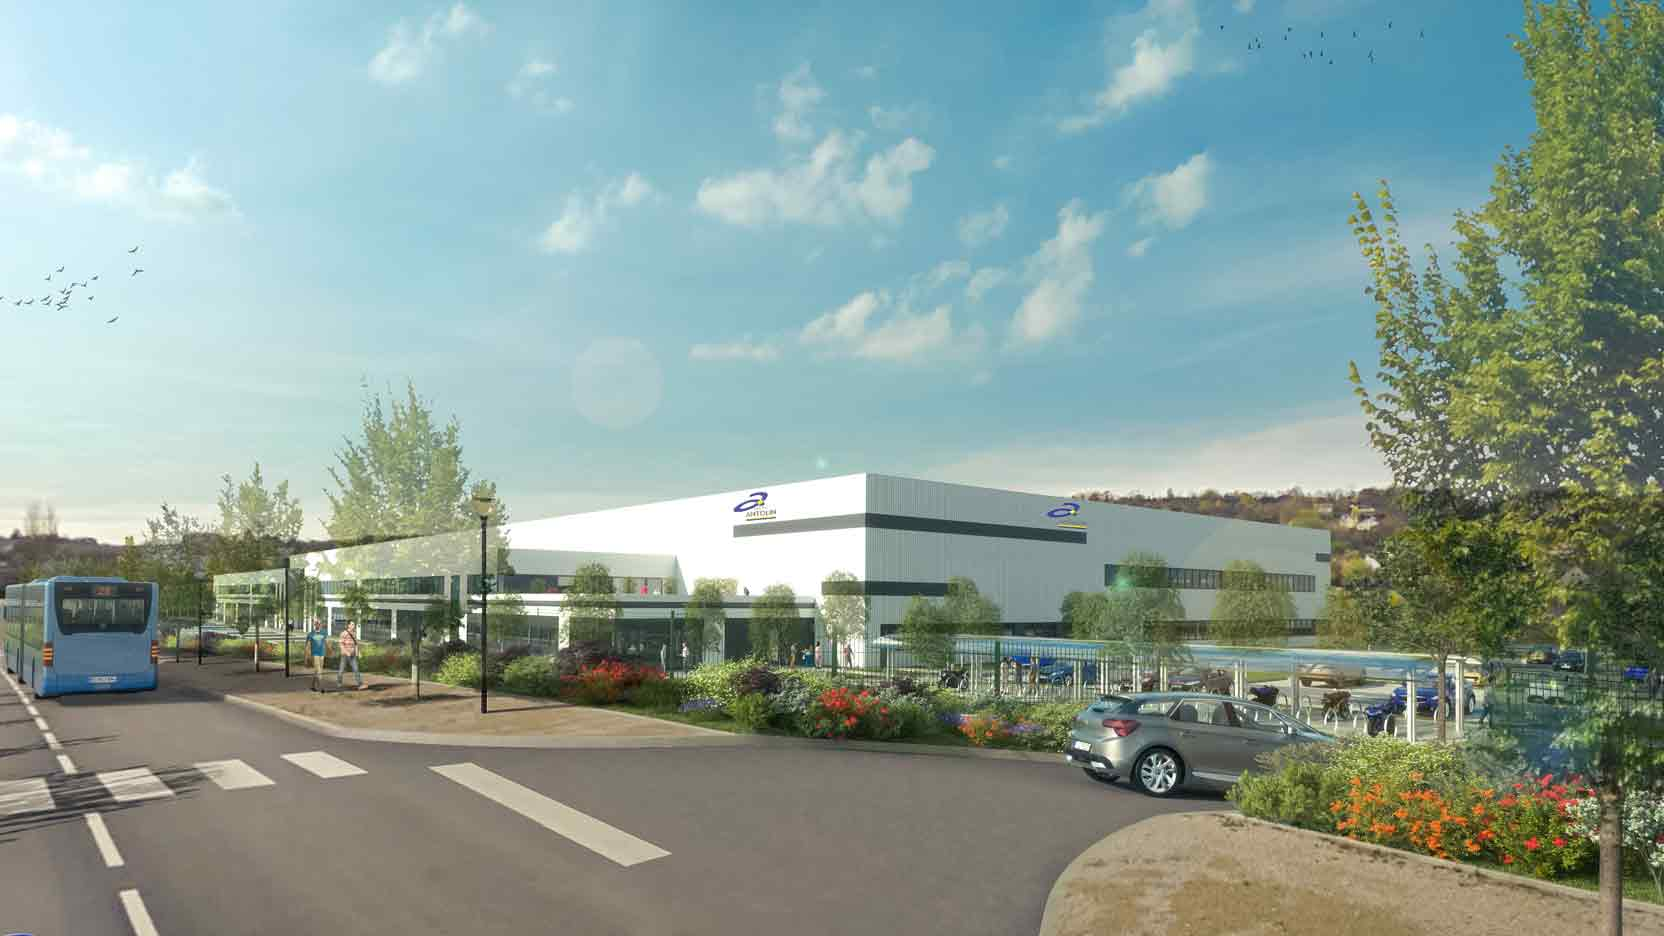 We are building a 22,000 m² property complex for Aktya in the Grand Besançon region of Temis Besançon